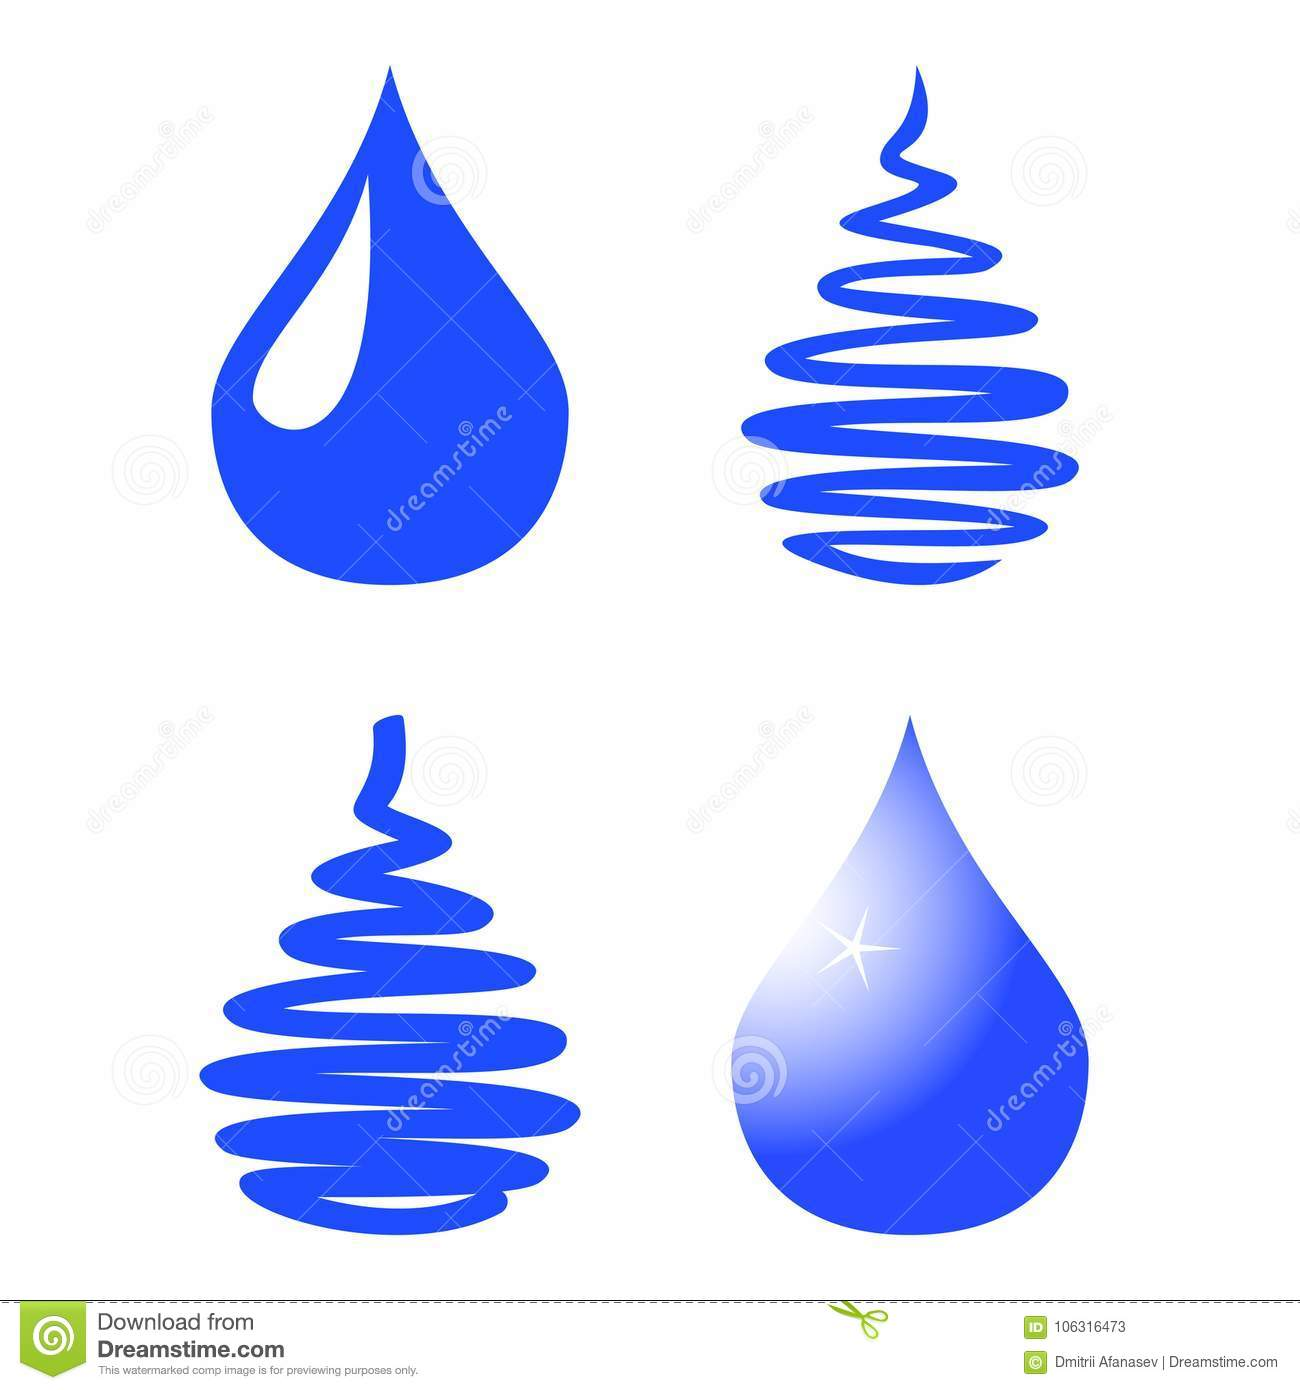 Water drop icon set isolated on white background. Vector Illustration.